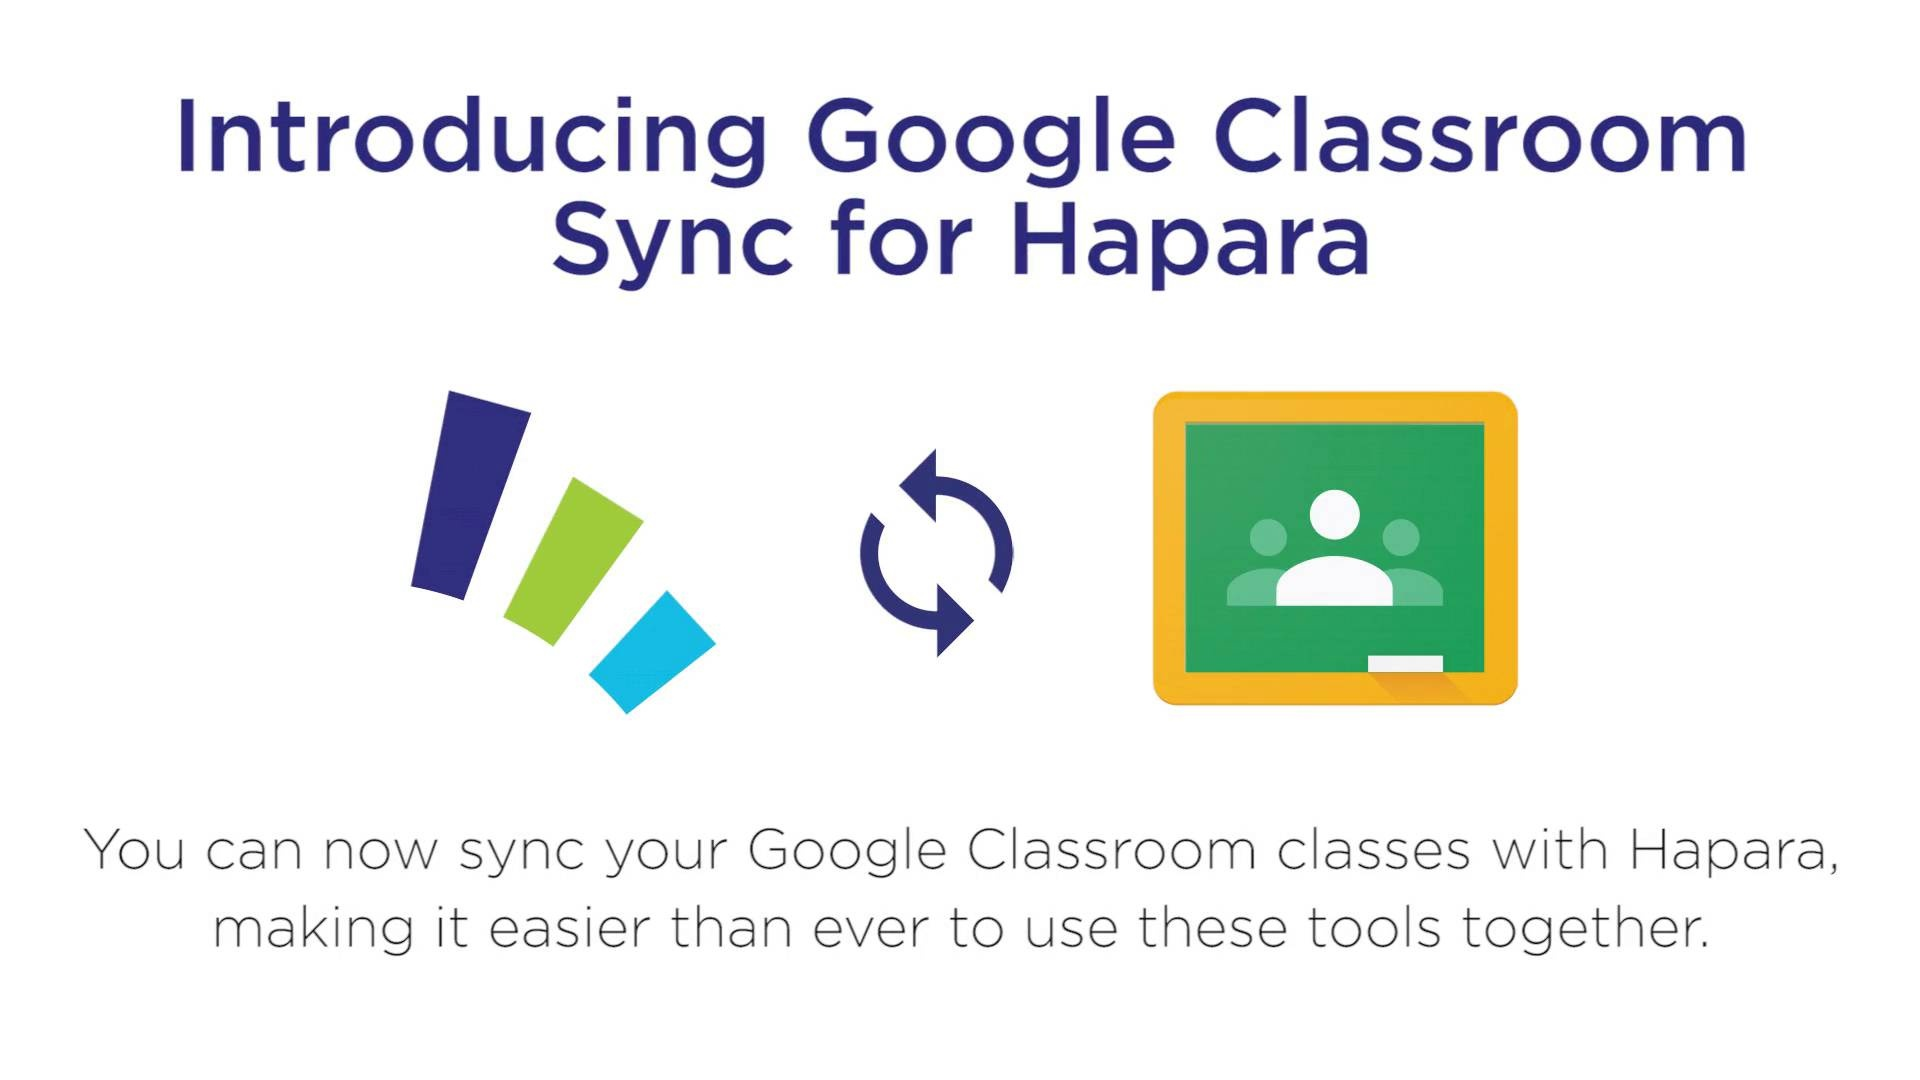 Wistia video thumbnail - Introducing Google Classroom Sync for Hapara